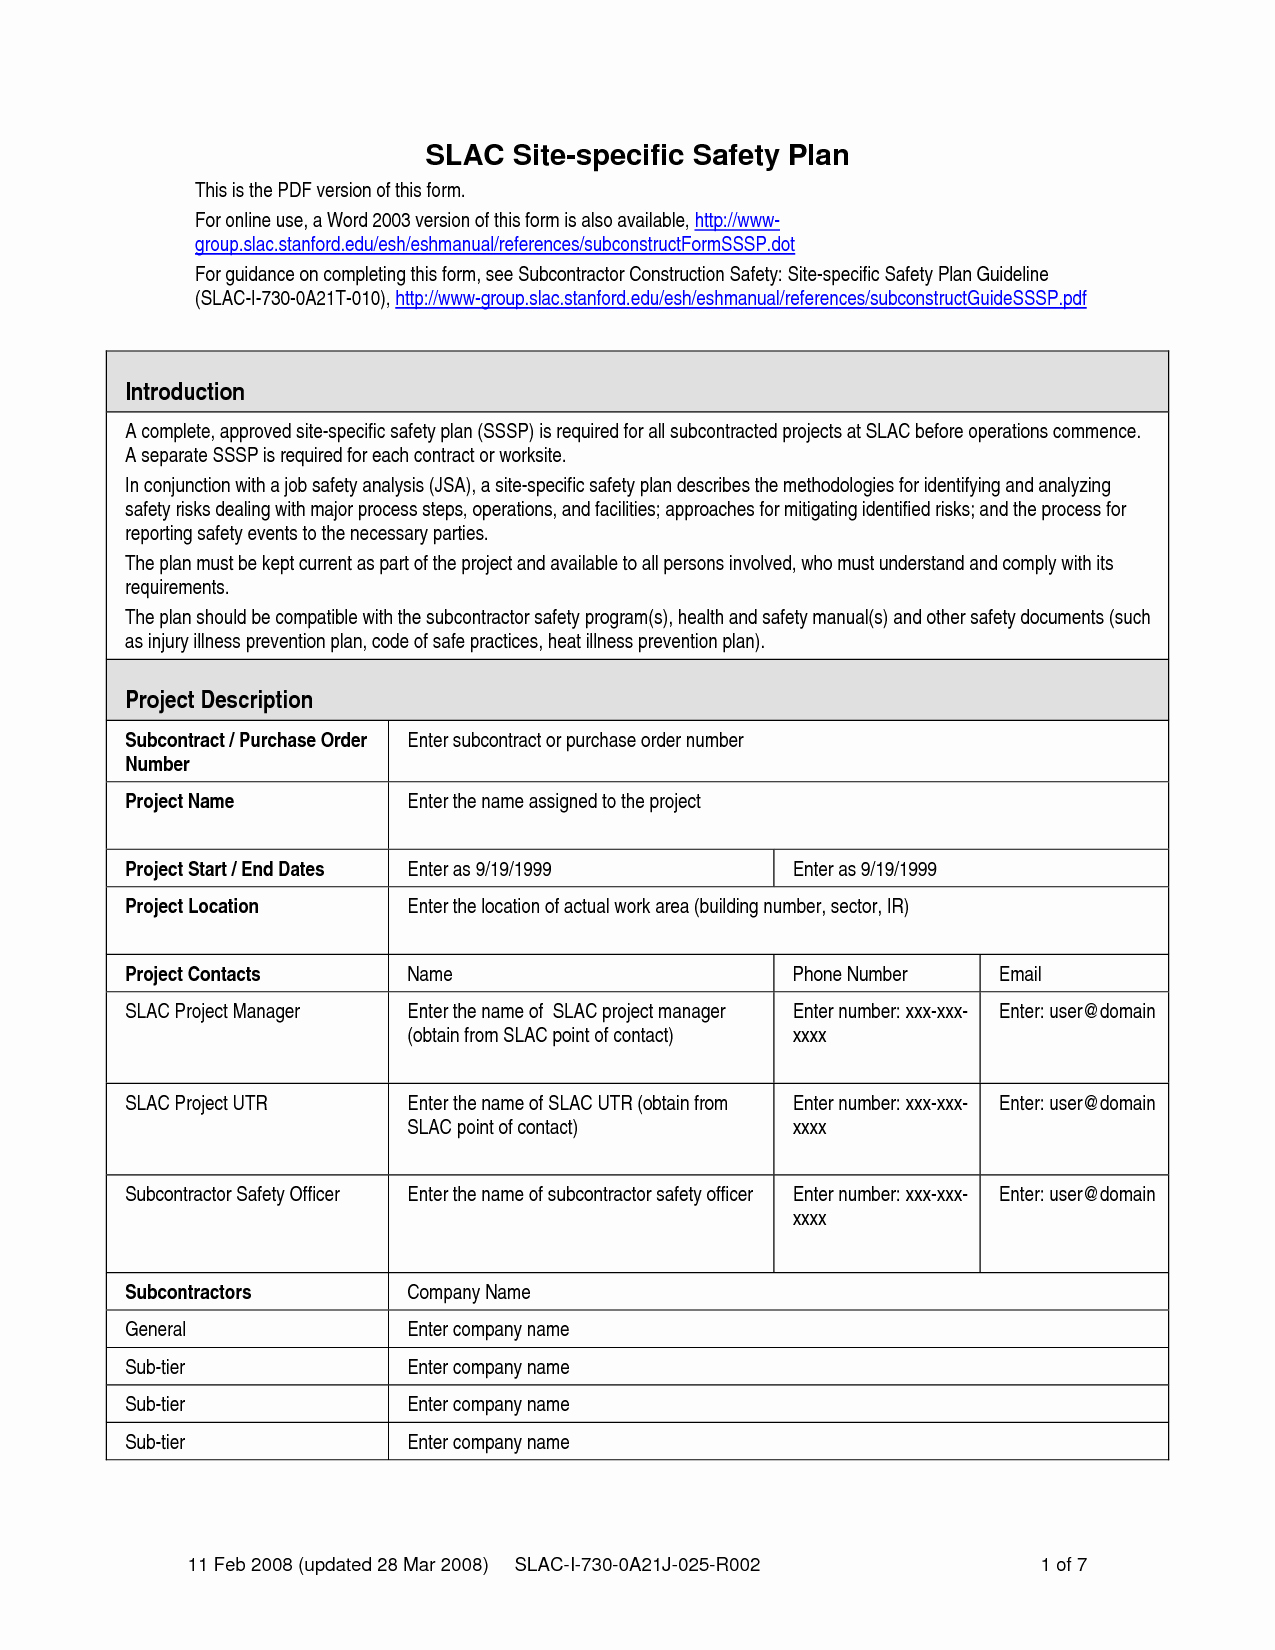 Construction Safety Plan Template Best Of Safety Plan Template